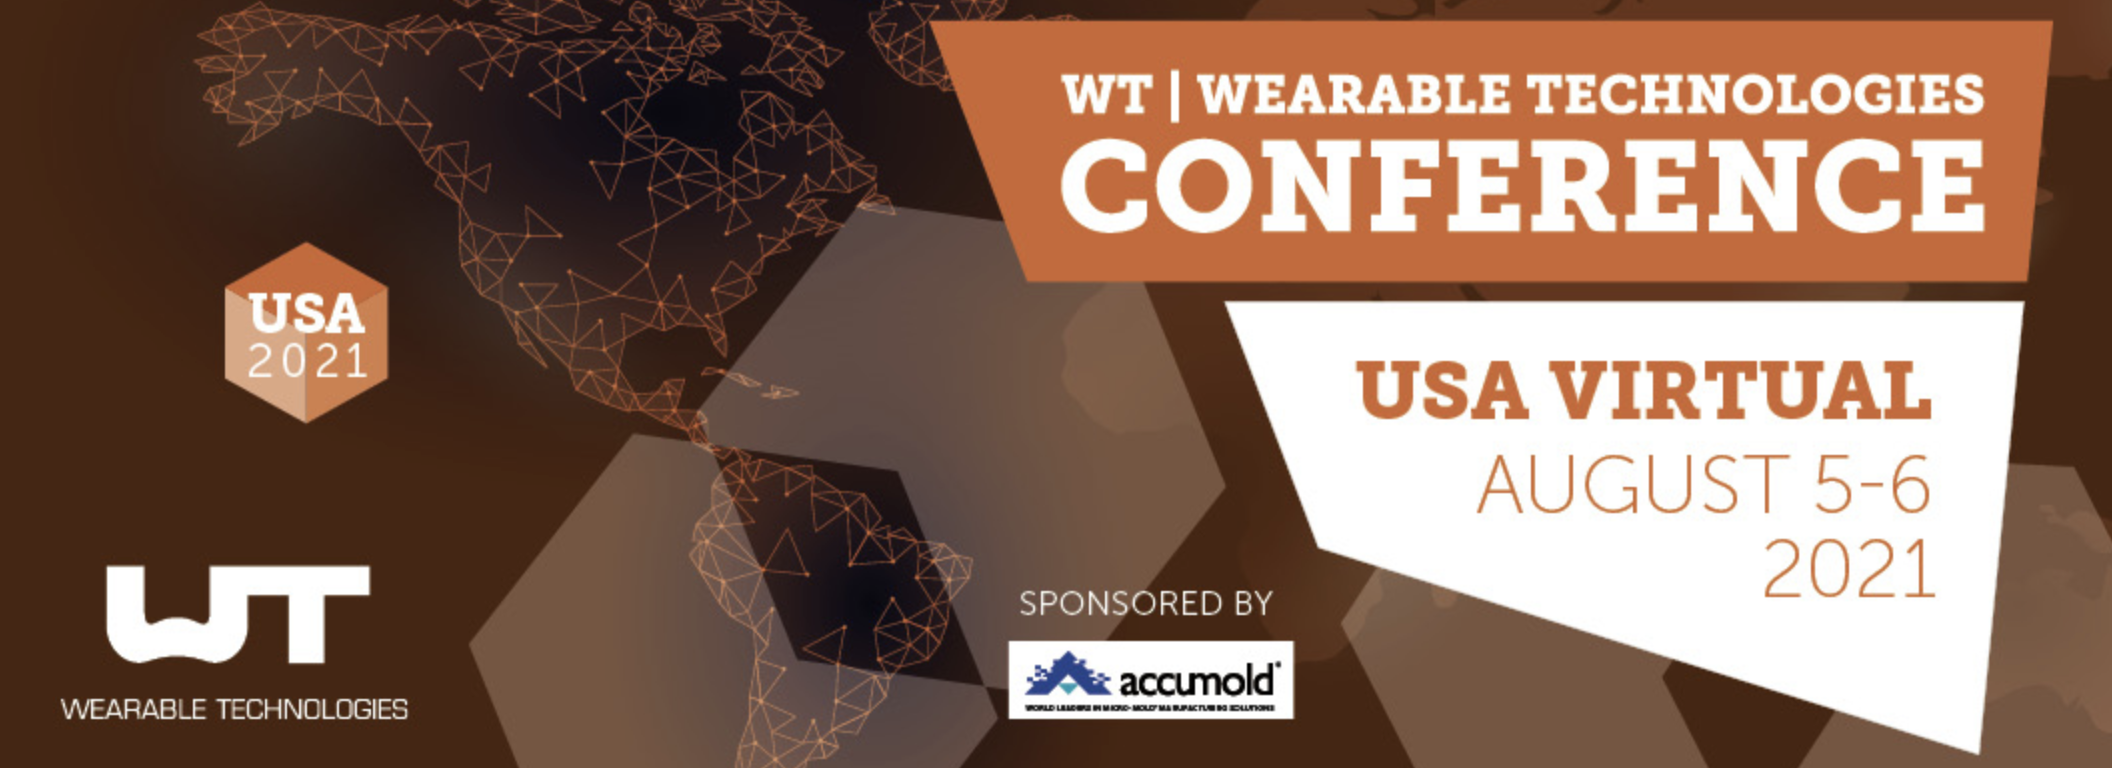 Wearable technologies conference USA 2021